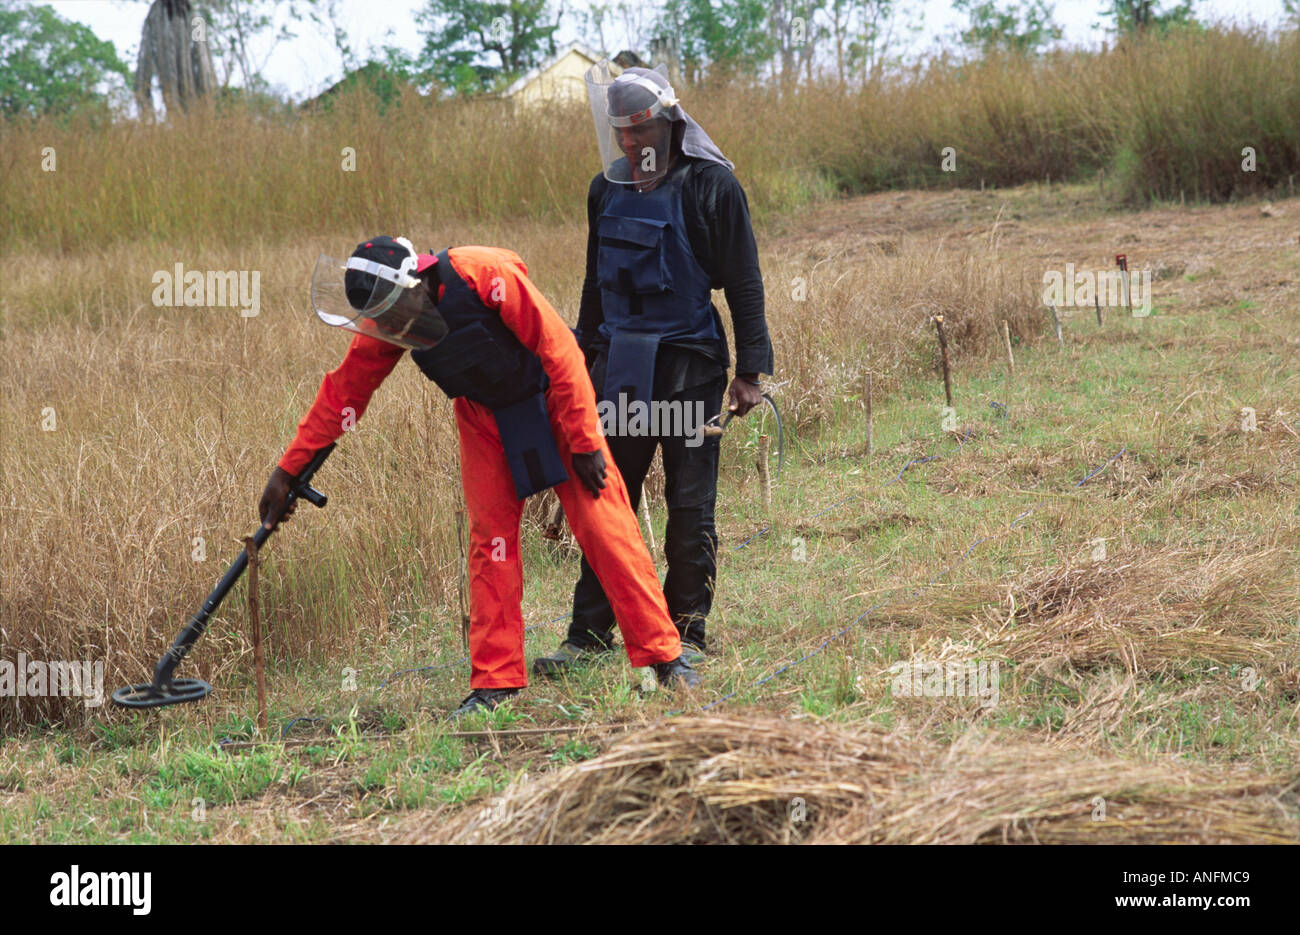 A trainee learning to search for land mines. Mozambique - Stock Image